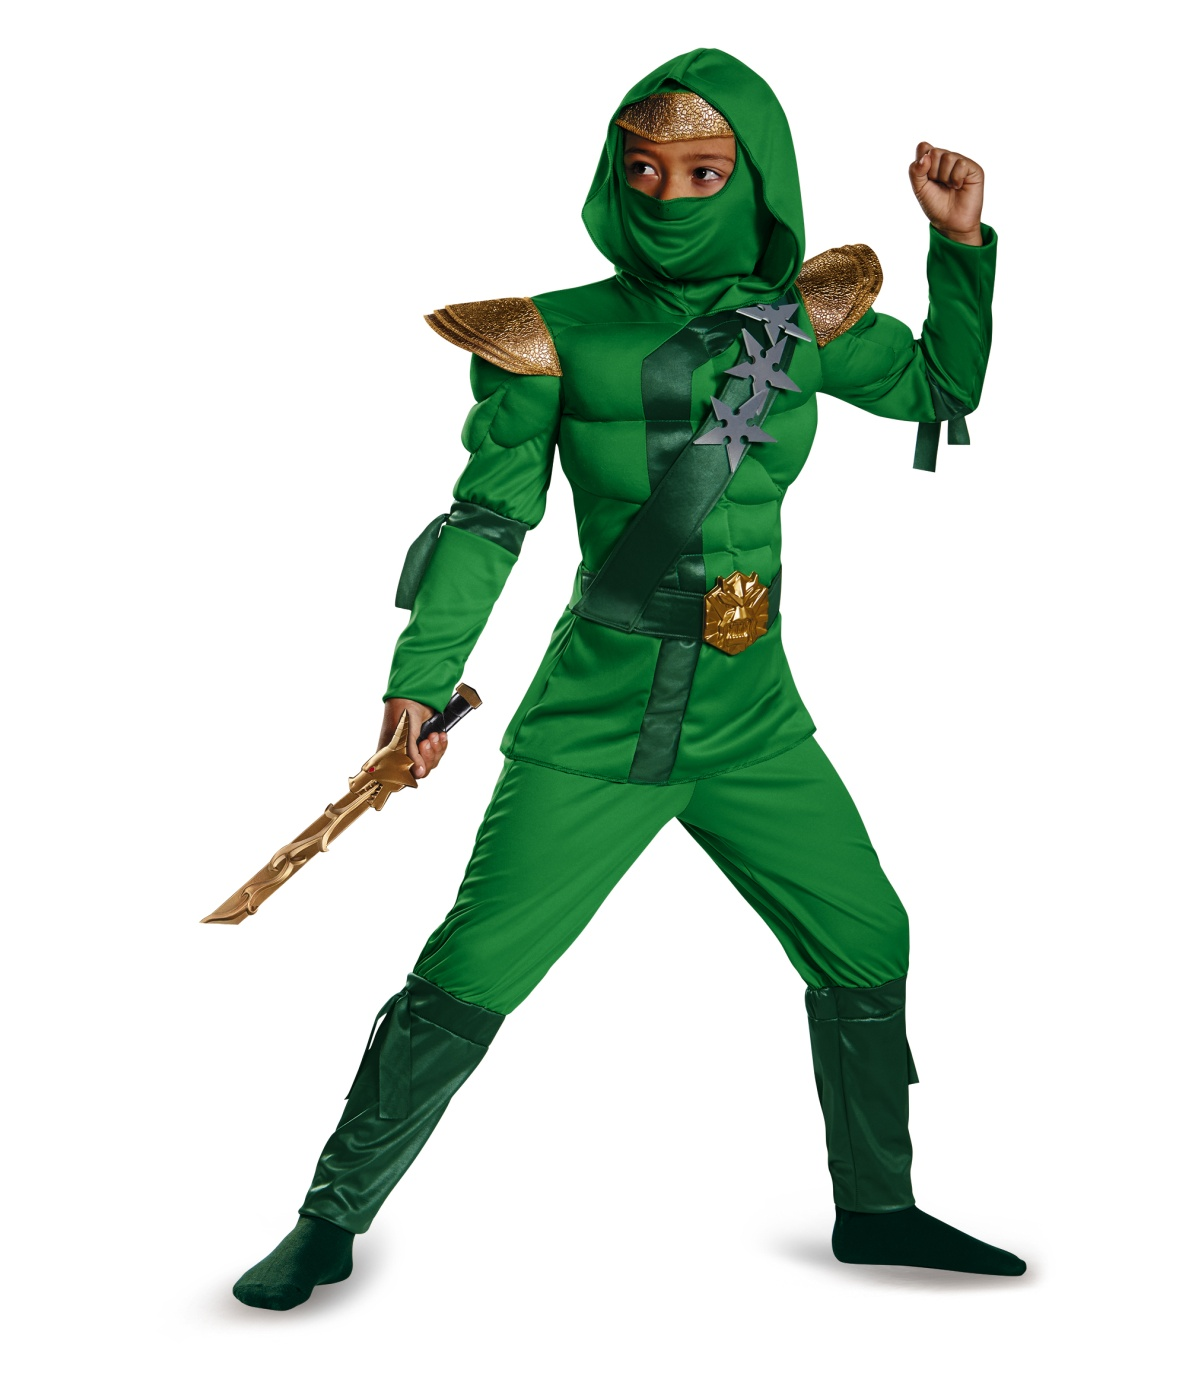 Hope Green Ninja Master Boys Muscle Costume  sc 1 st  Wonder Costumes & Hope Green Ninja Master Boys Muscle Costume - Ninja Costumes